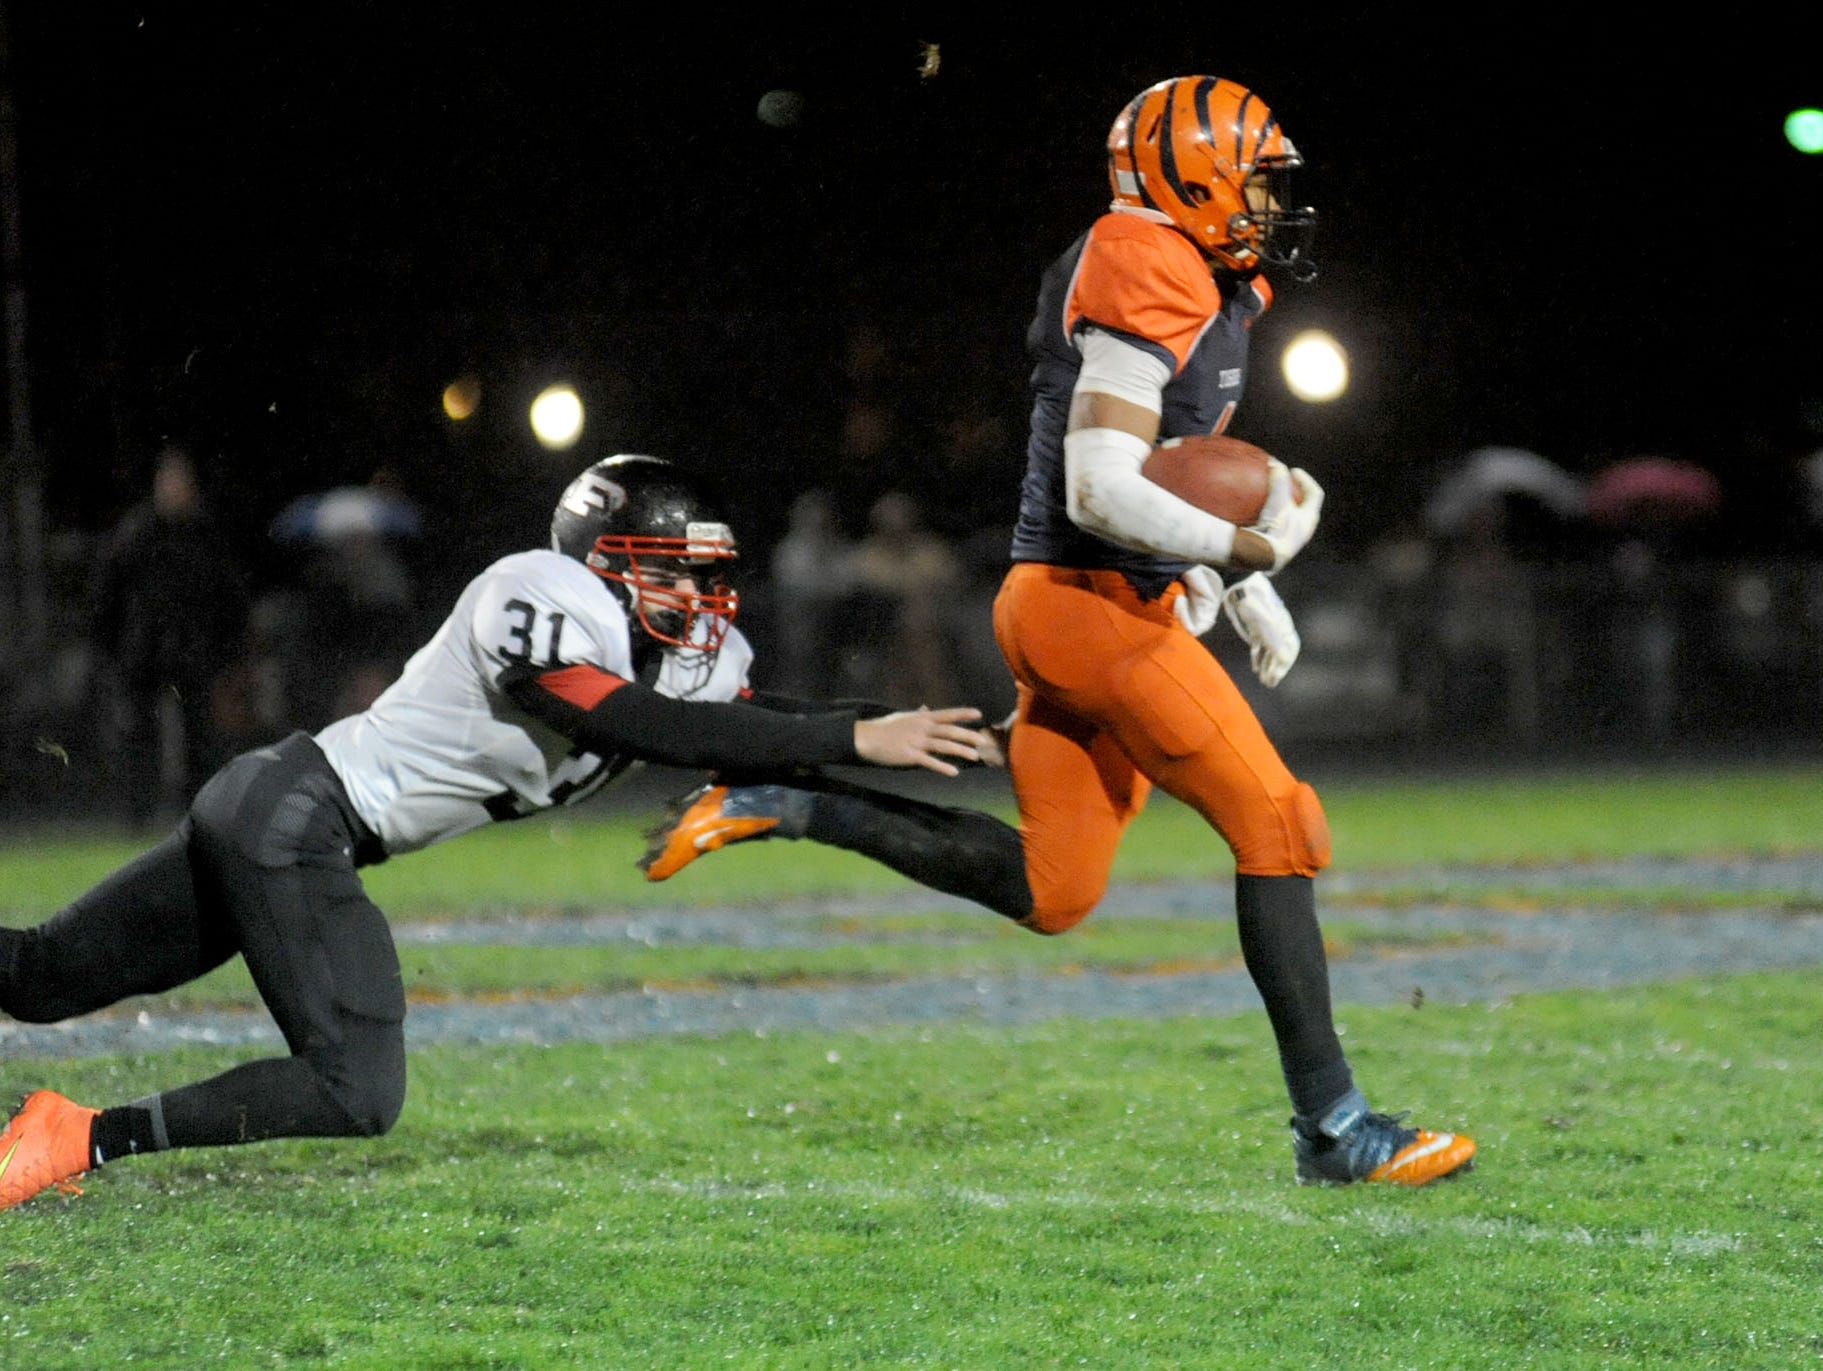 Galion Tigers kick returner Cario Davison outruns the Pleasant Spartans kickoff team enroute to a touchdown during first-half action in high school football Friday night, Oct. 31, 2014 at Galion.